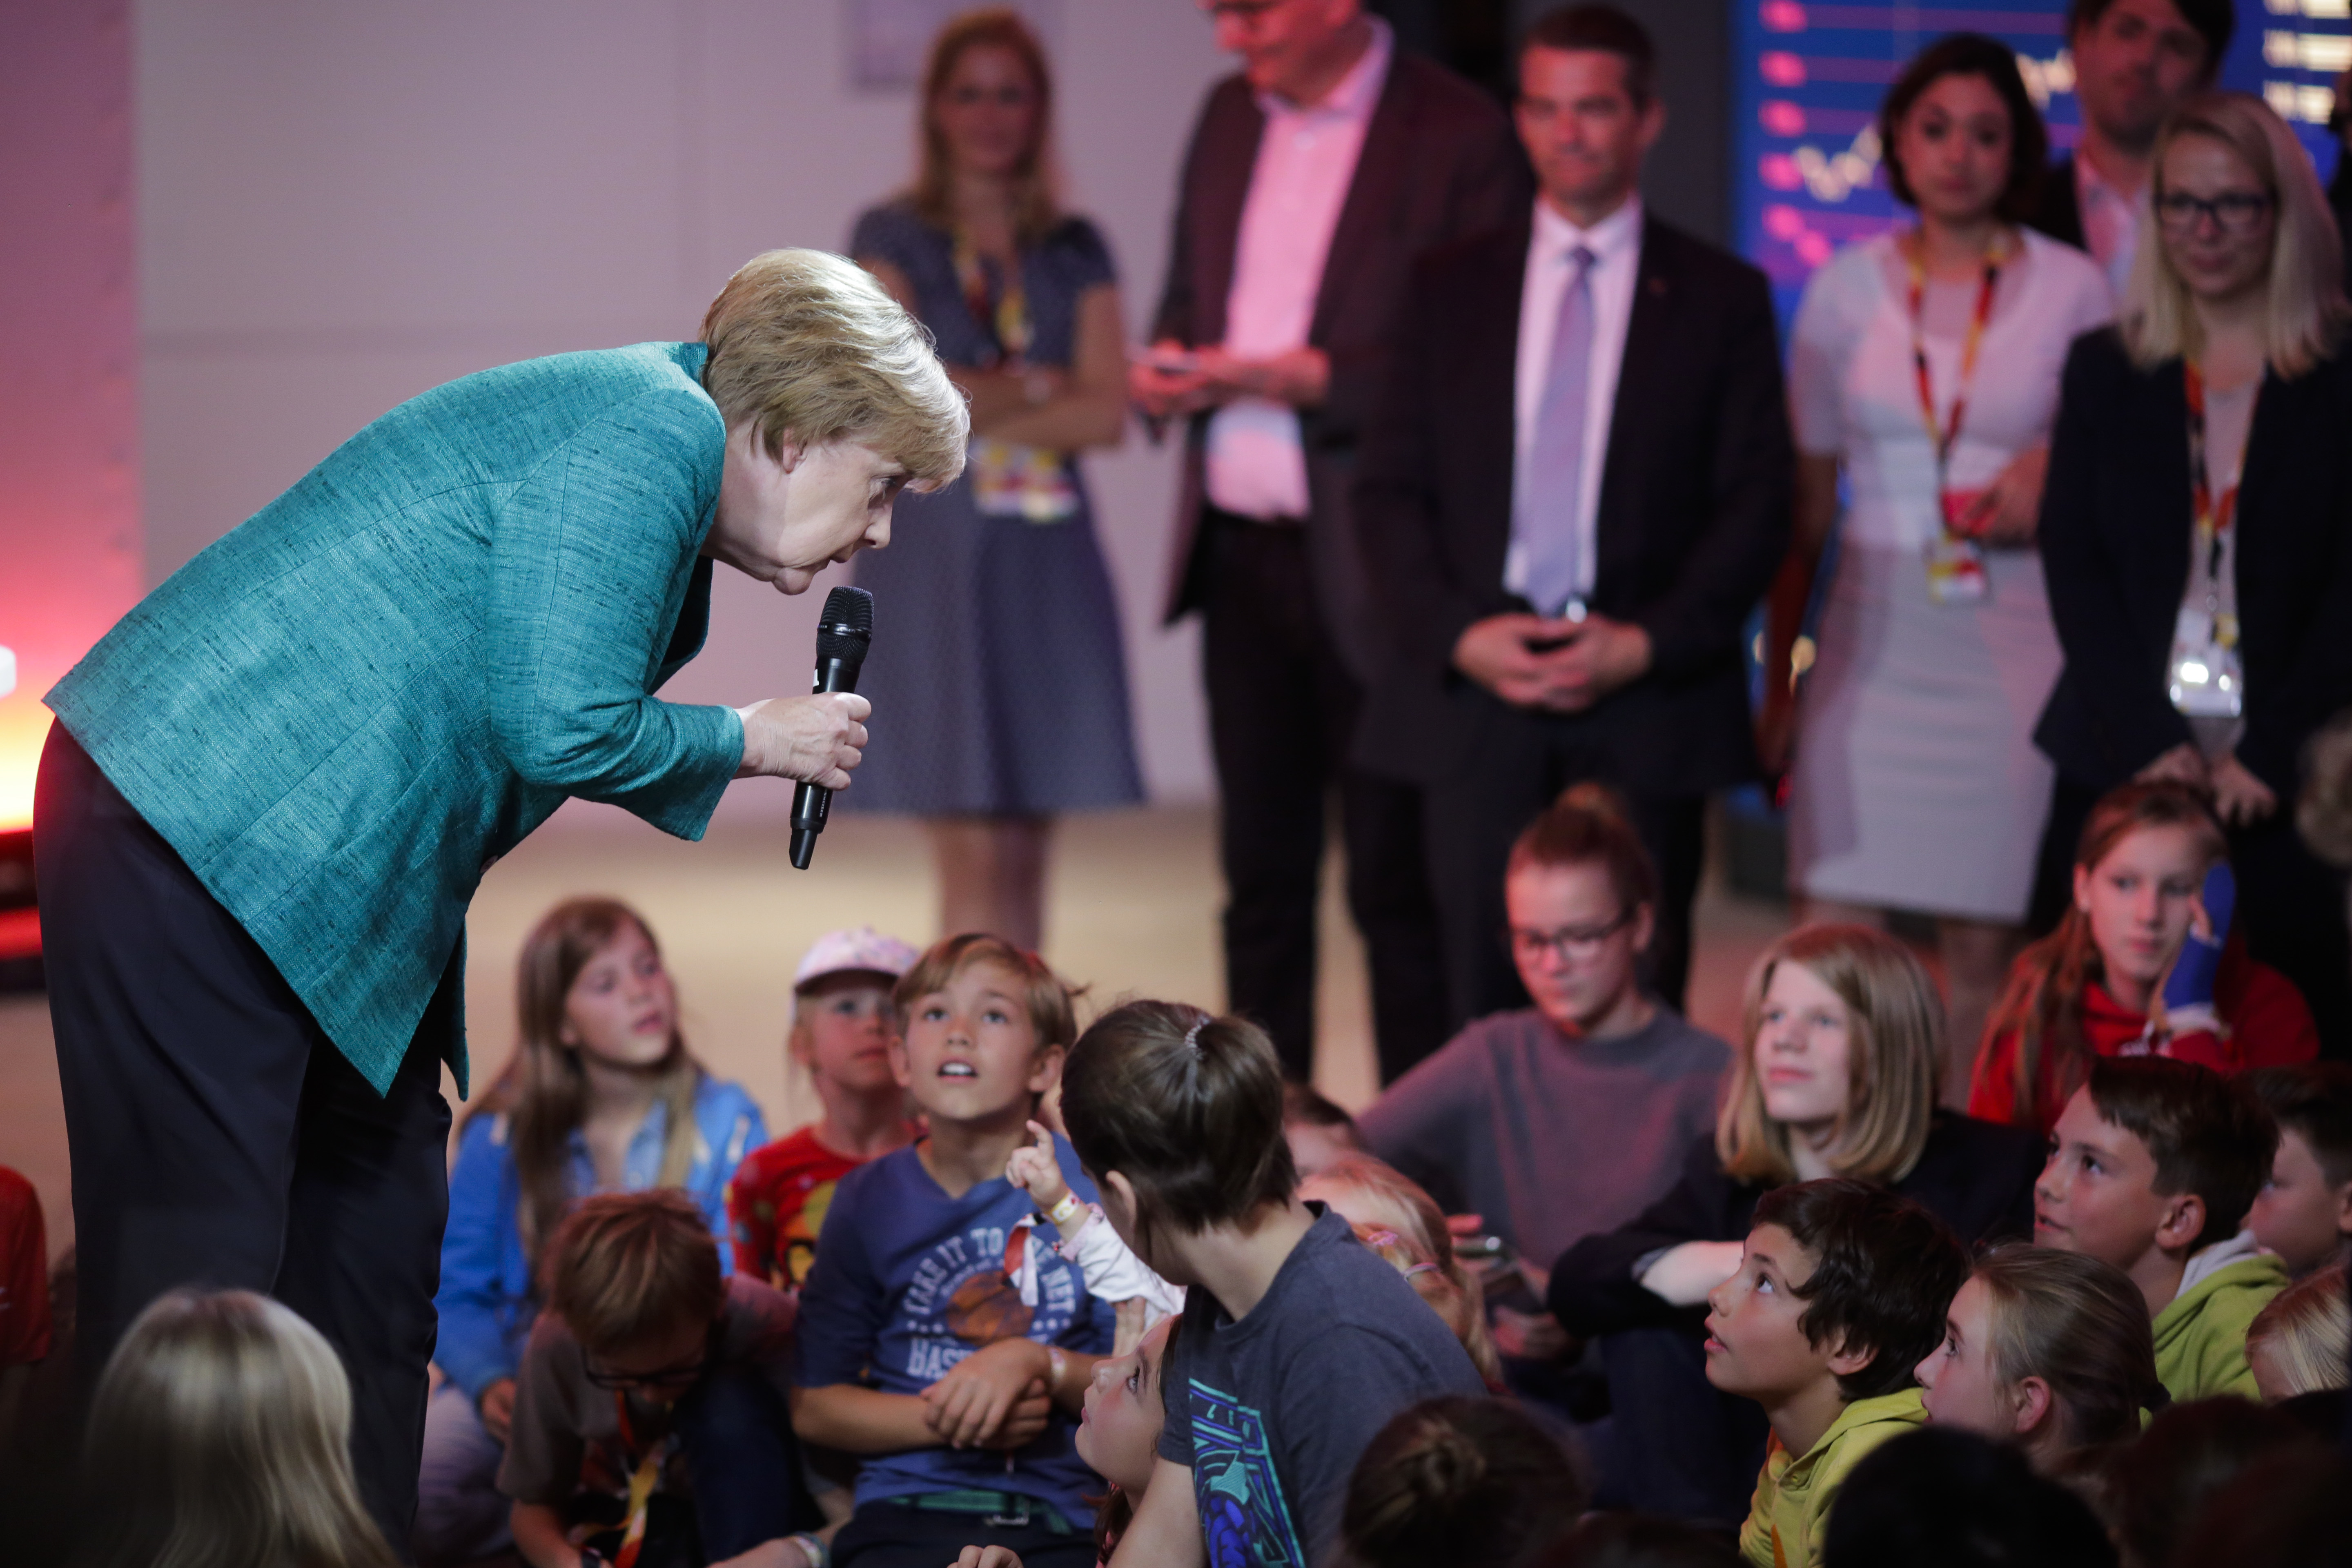 German Chancellor Angela Merkel, left, attends a news conference for children during a family event of her Christian Democratic Union party in Berlin,  Sept. 17, 2017.